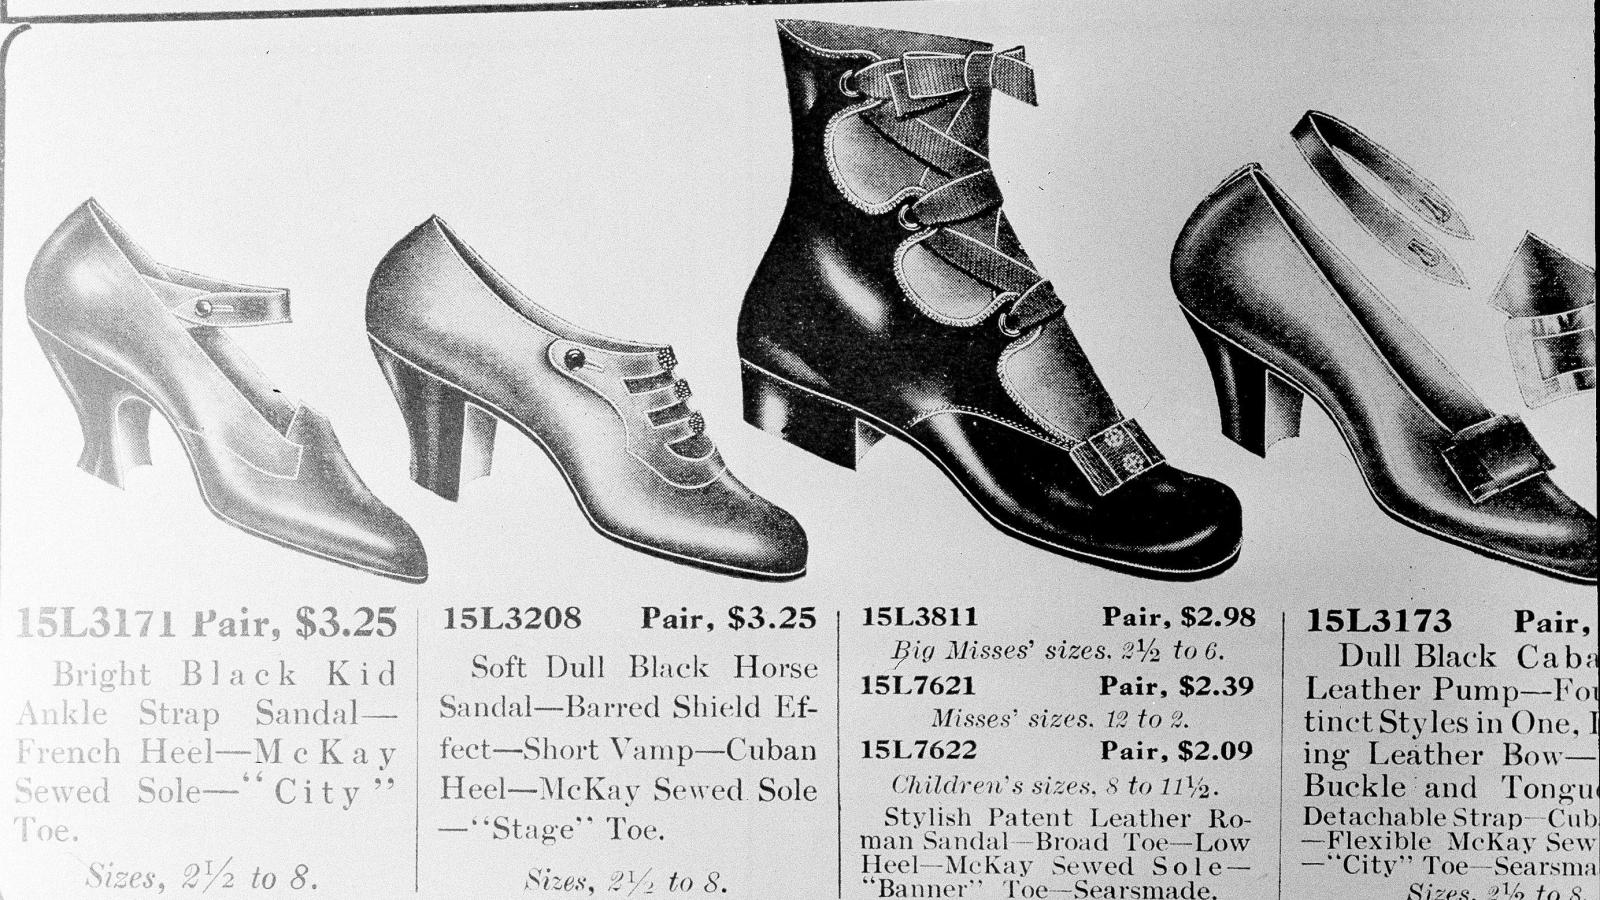 b4d89292cf6 A viral Twitter thread revealed Sears s history as disruptor of Jim  Crow-era racism